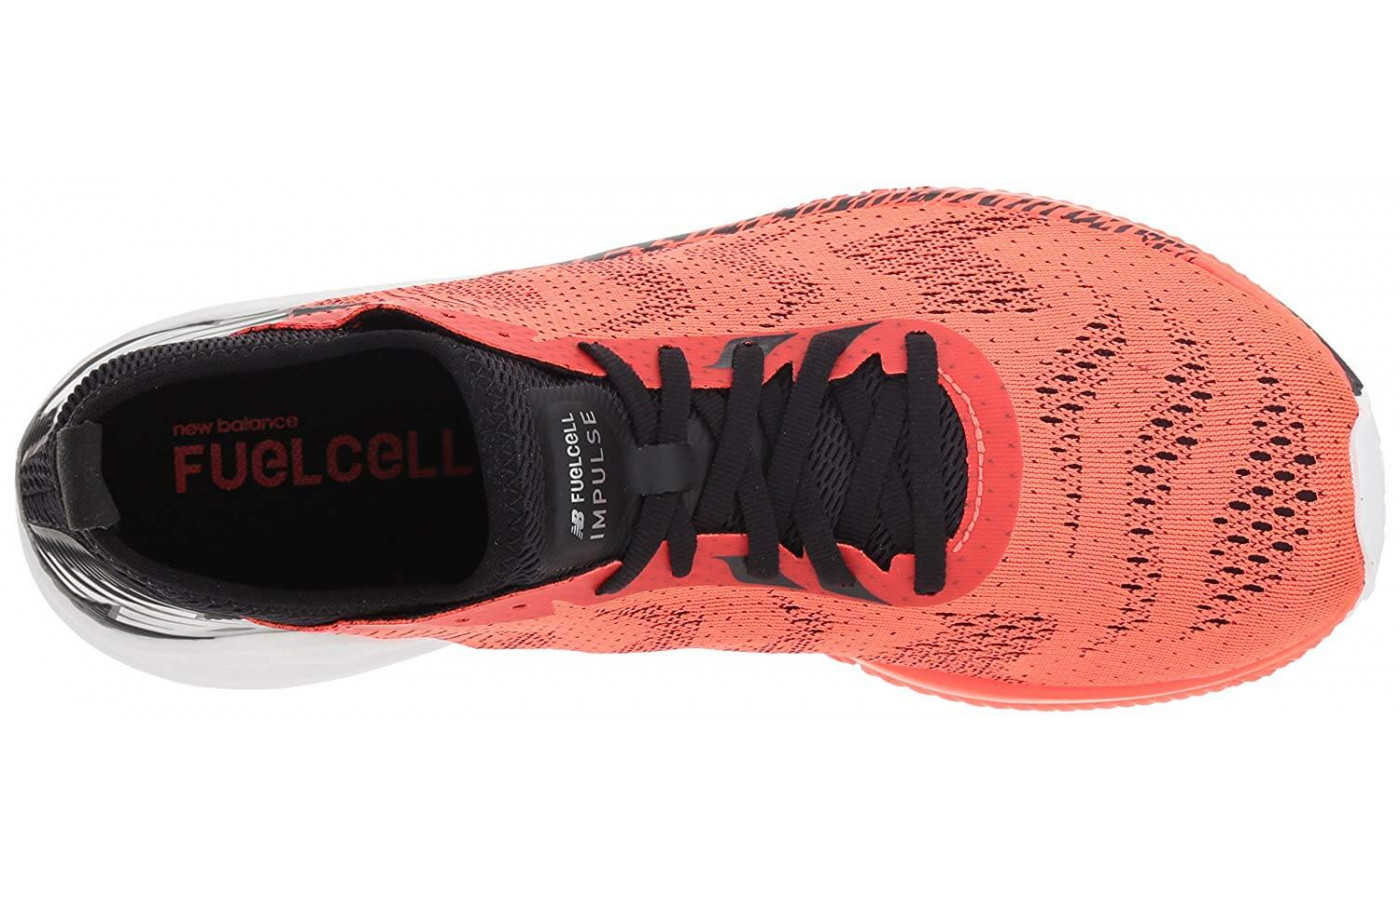 New Balance Fuelcell Impulse top